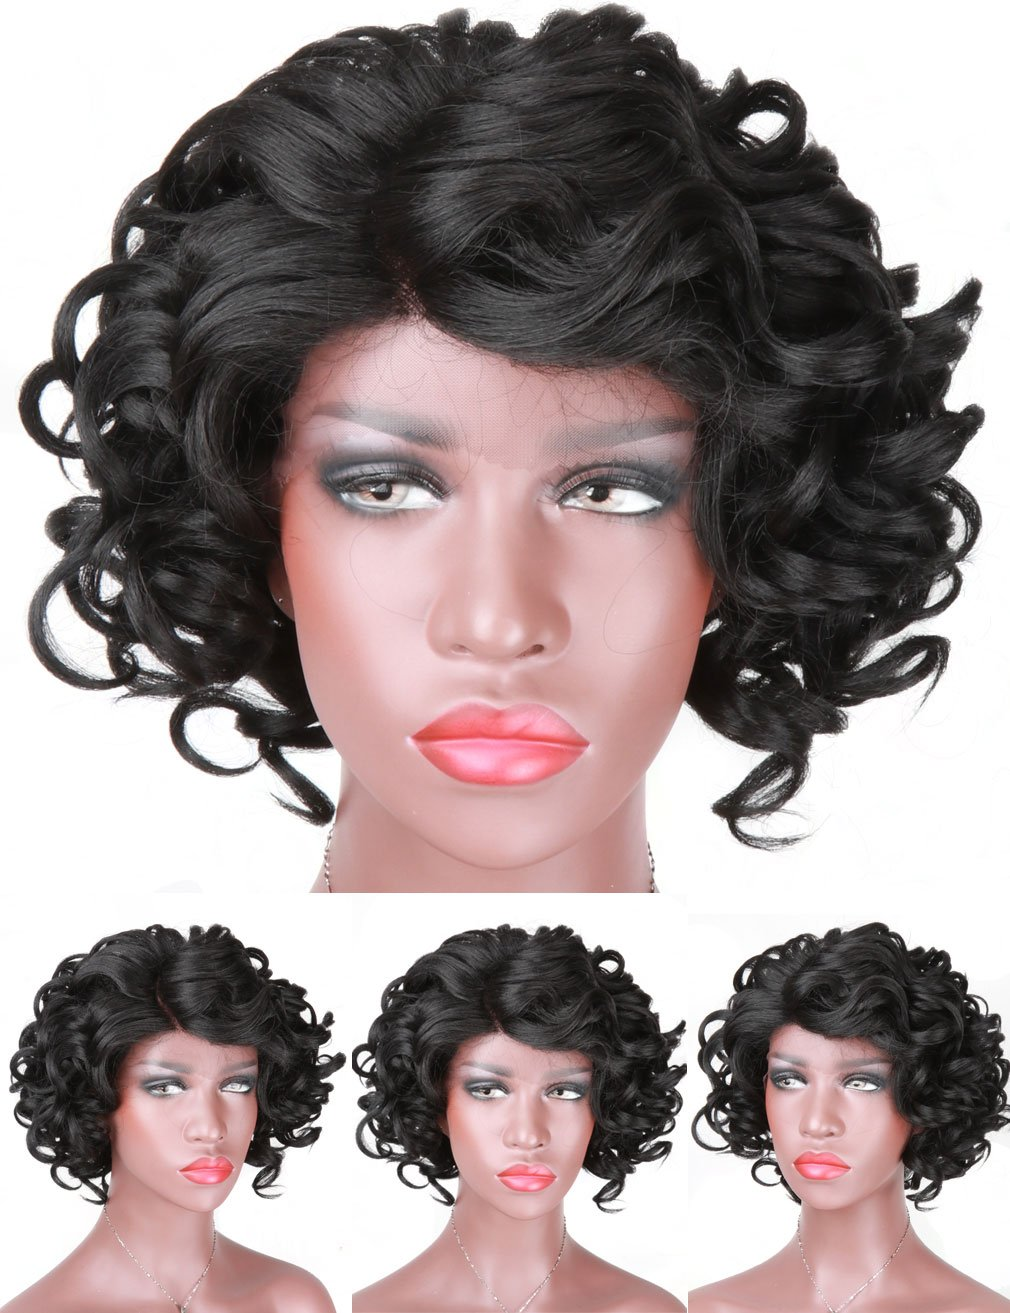 Short Curly Wave Synthetic Lace Front Wigs - Natural looking L Part 1B Color Heat Resistant Hair Replacement Wigs